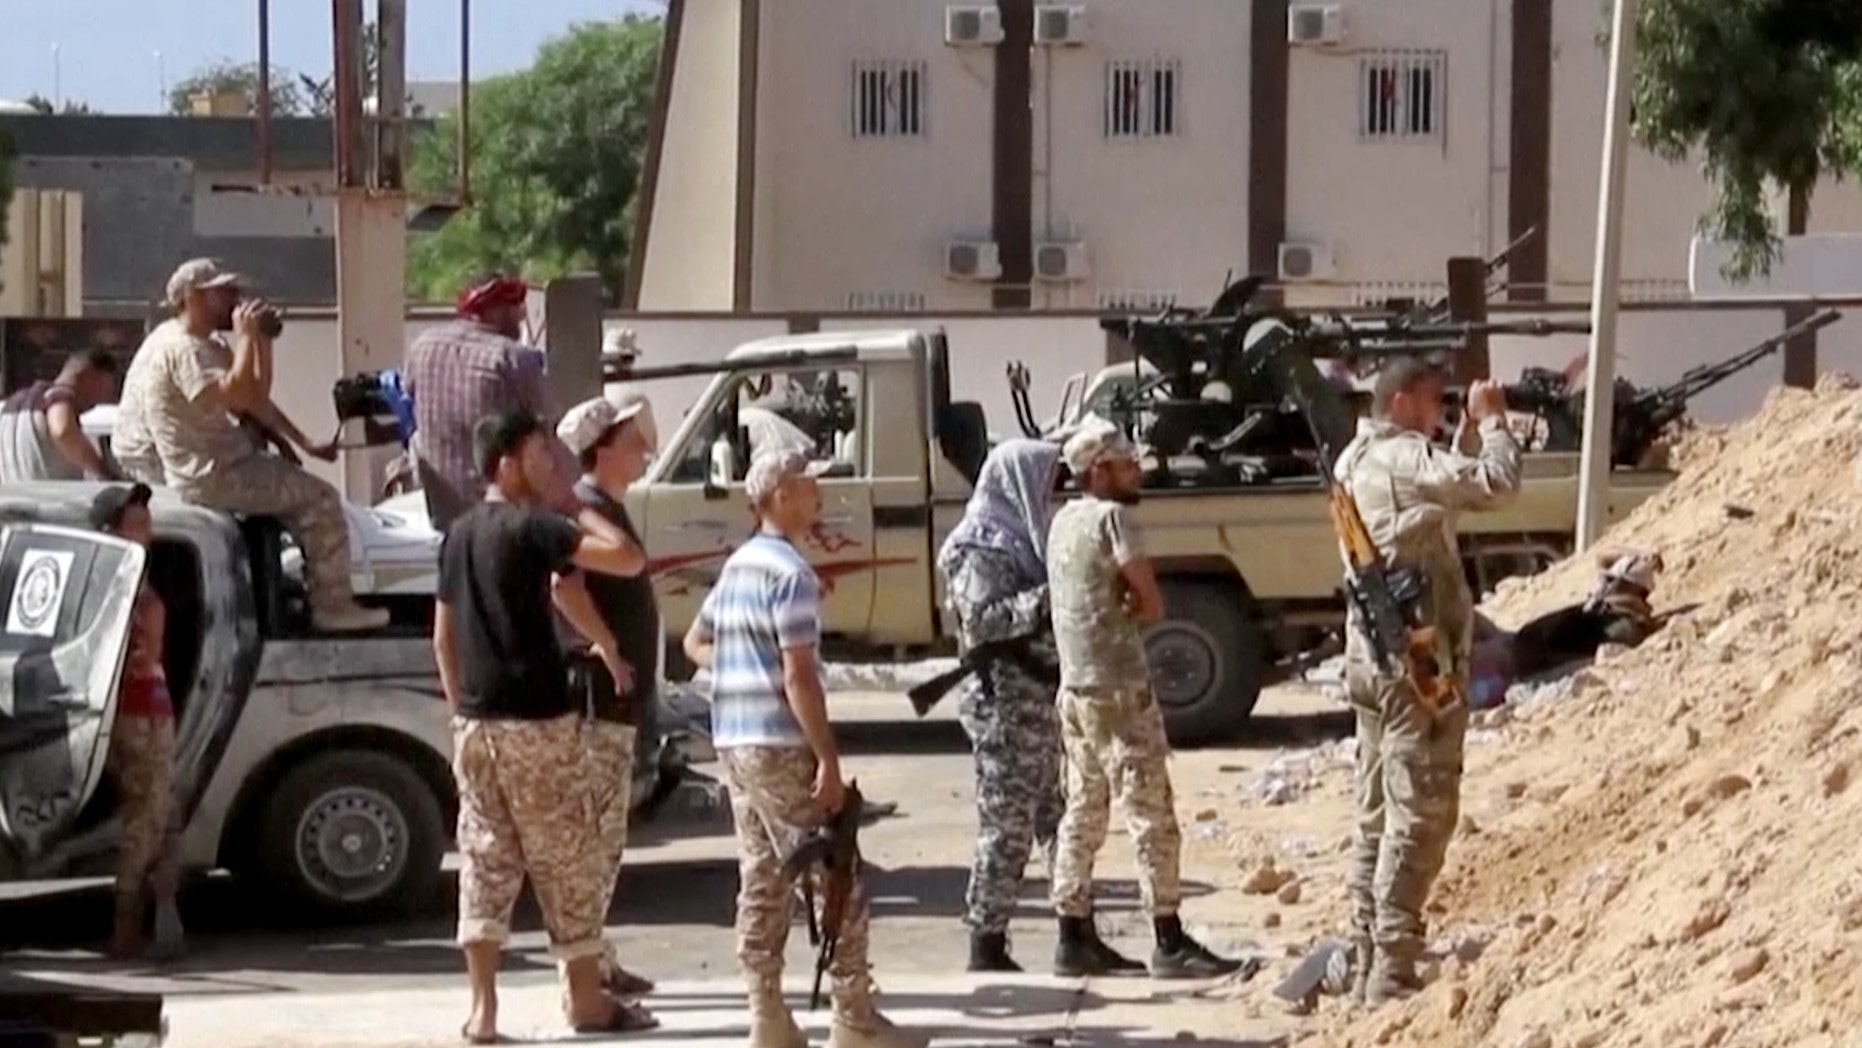 FILE -- June 14, 2016: This image made from Associated Press video shows Armed Misrata fighters loyal to the unity government on the main street of Sirte. A Libyan hospital spokesman says many pro-government fighters have been killed and tens wounded in latest fighting for the Islamic State group's bastion of Sirte. Libyan forces loyal to the unity government have been waging an offensive since last month to dislodge the militants from the coastal city.